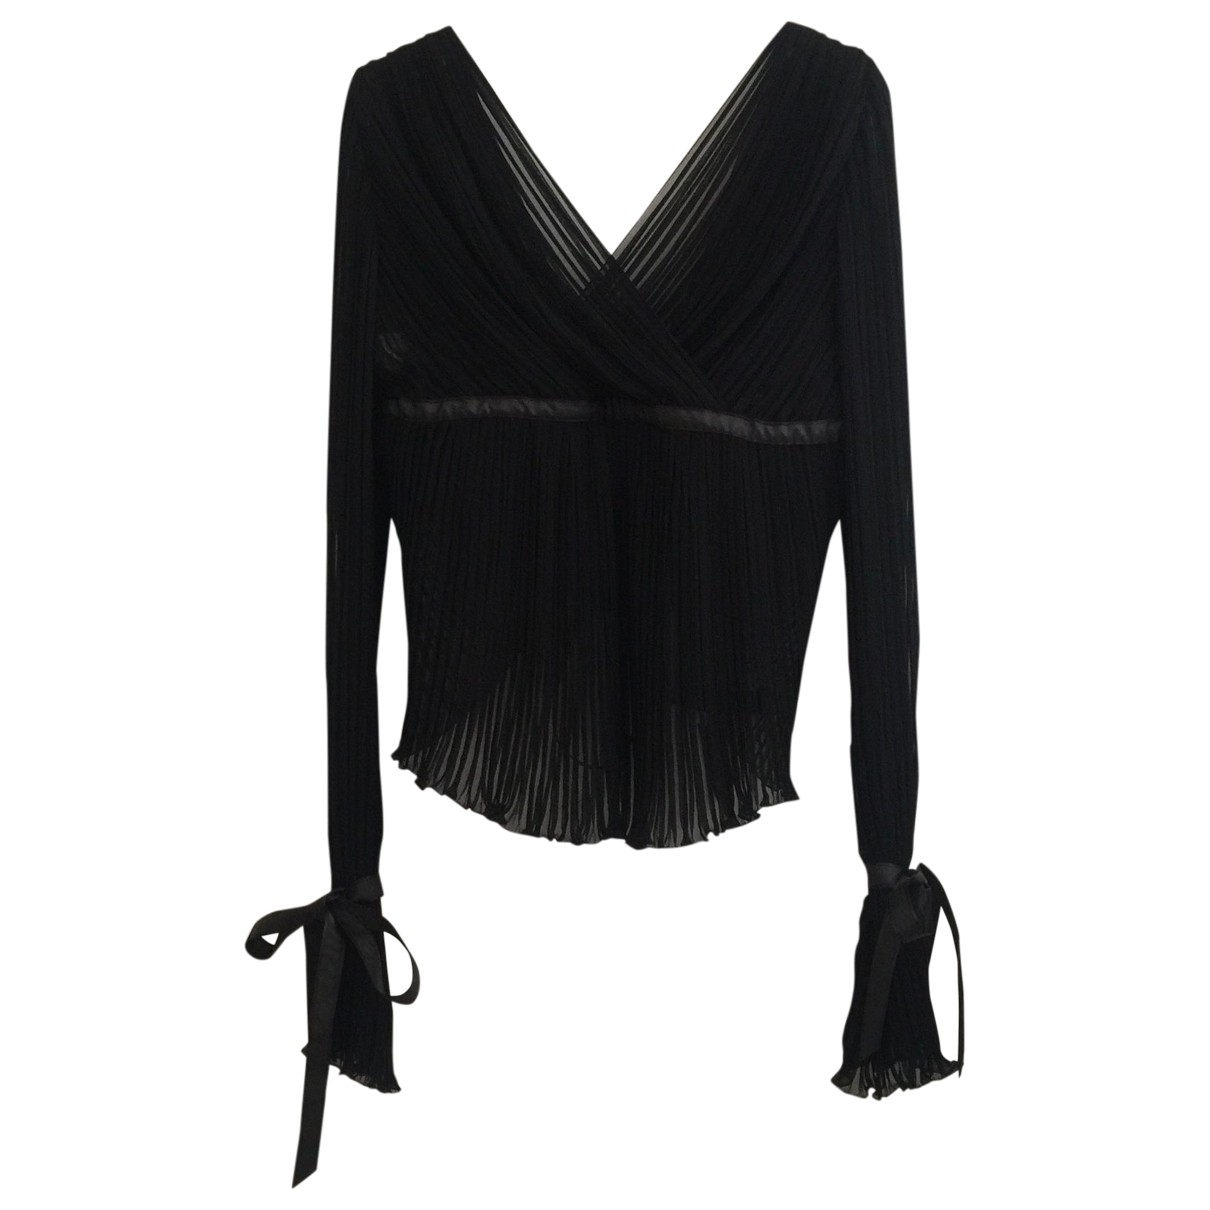 Alberta Ferretti \N Black  top for Women 44 IT